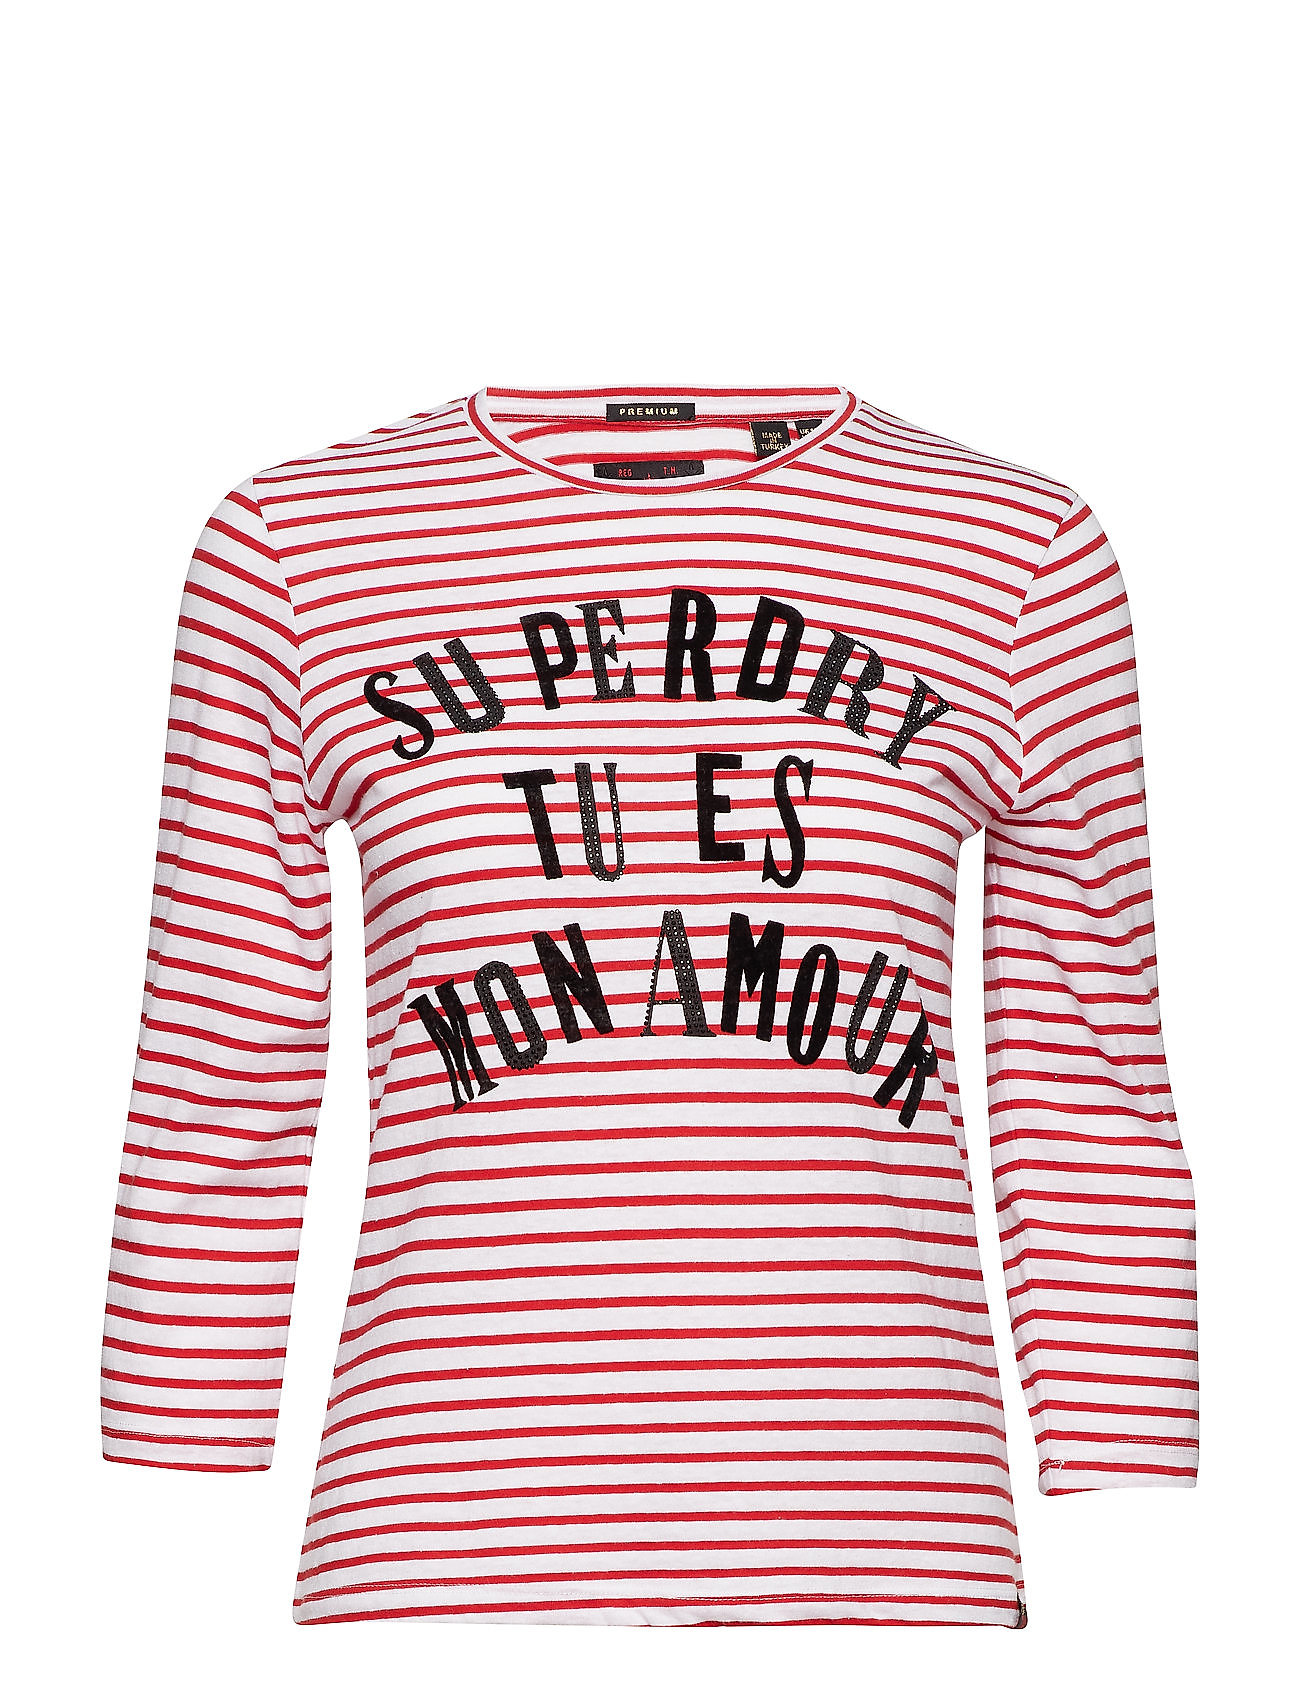 Superdry JESSA GRAPHIC TOP - ROYALTY RED STRIPE